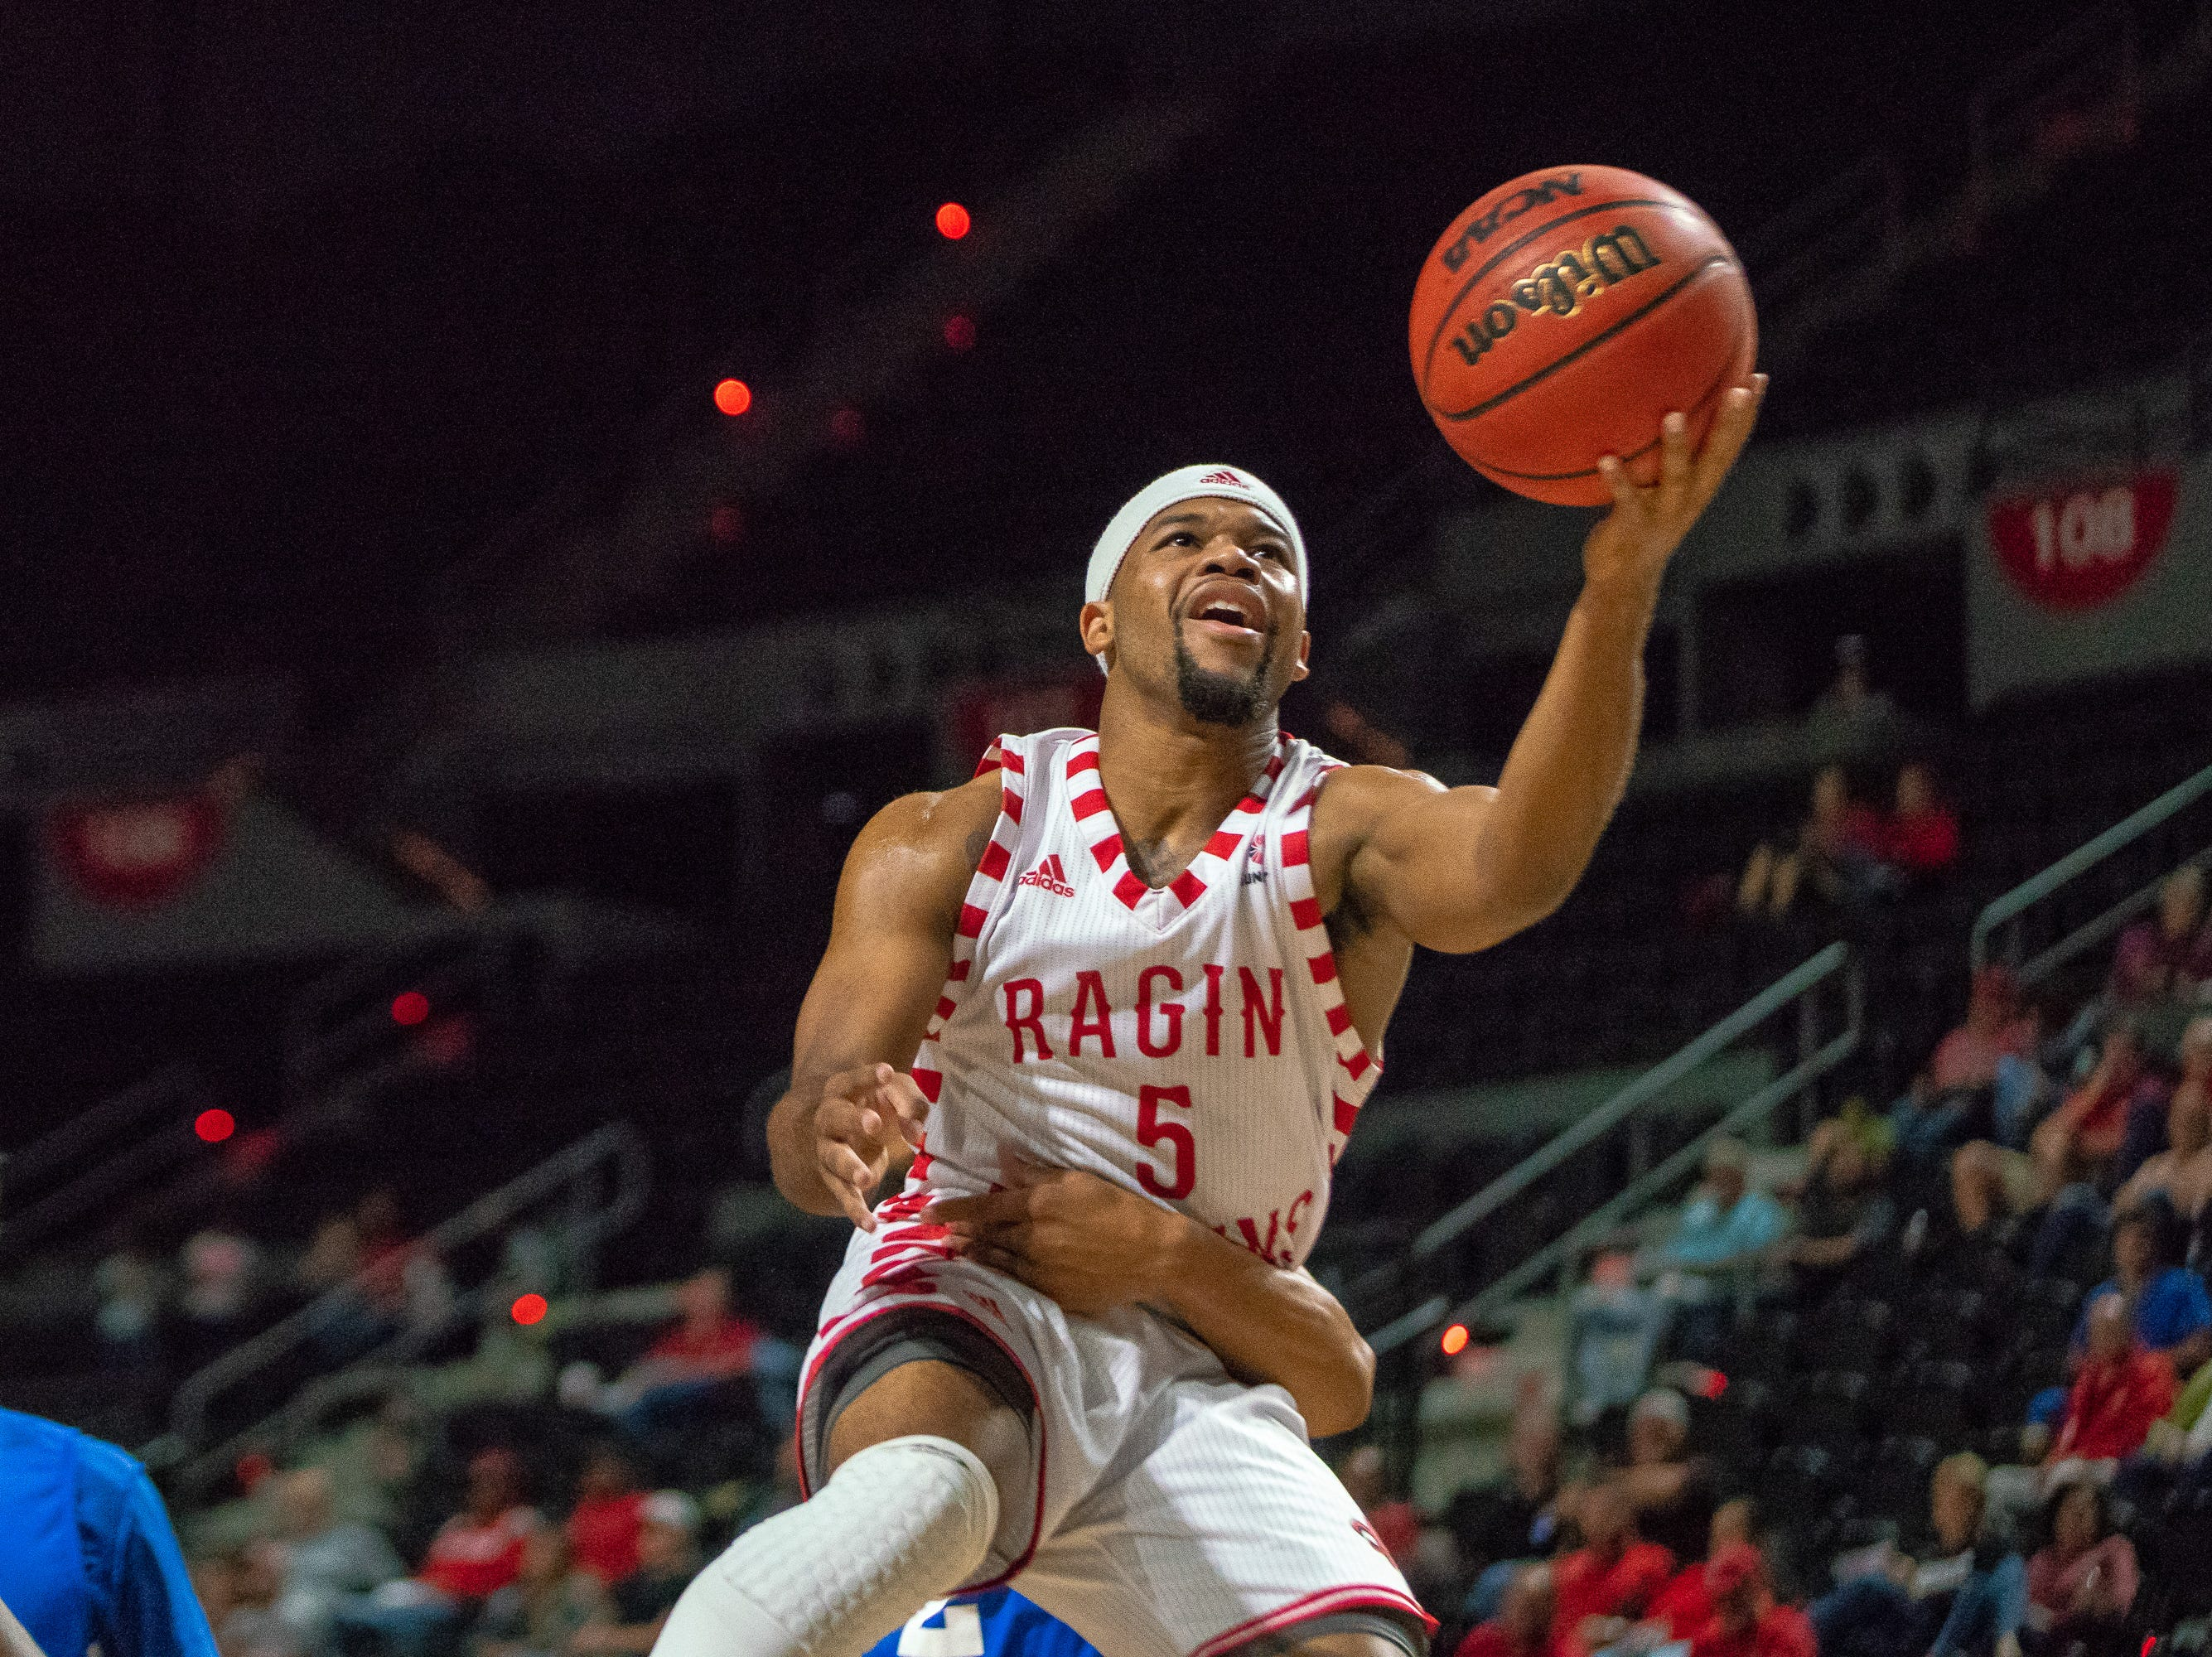 UL's Trajan Wesley gets fouled while going up to the goal as the Ragin' Cajuns take on the University of the Virgin Islands Buccaneers at the Cajundome on Nov. 6, 2018.